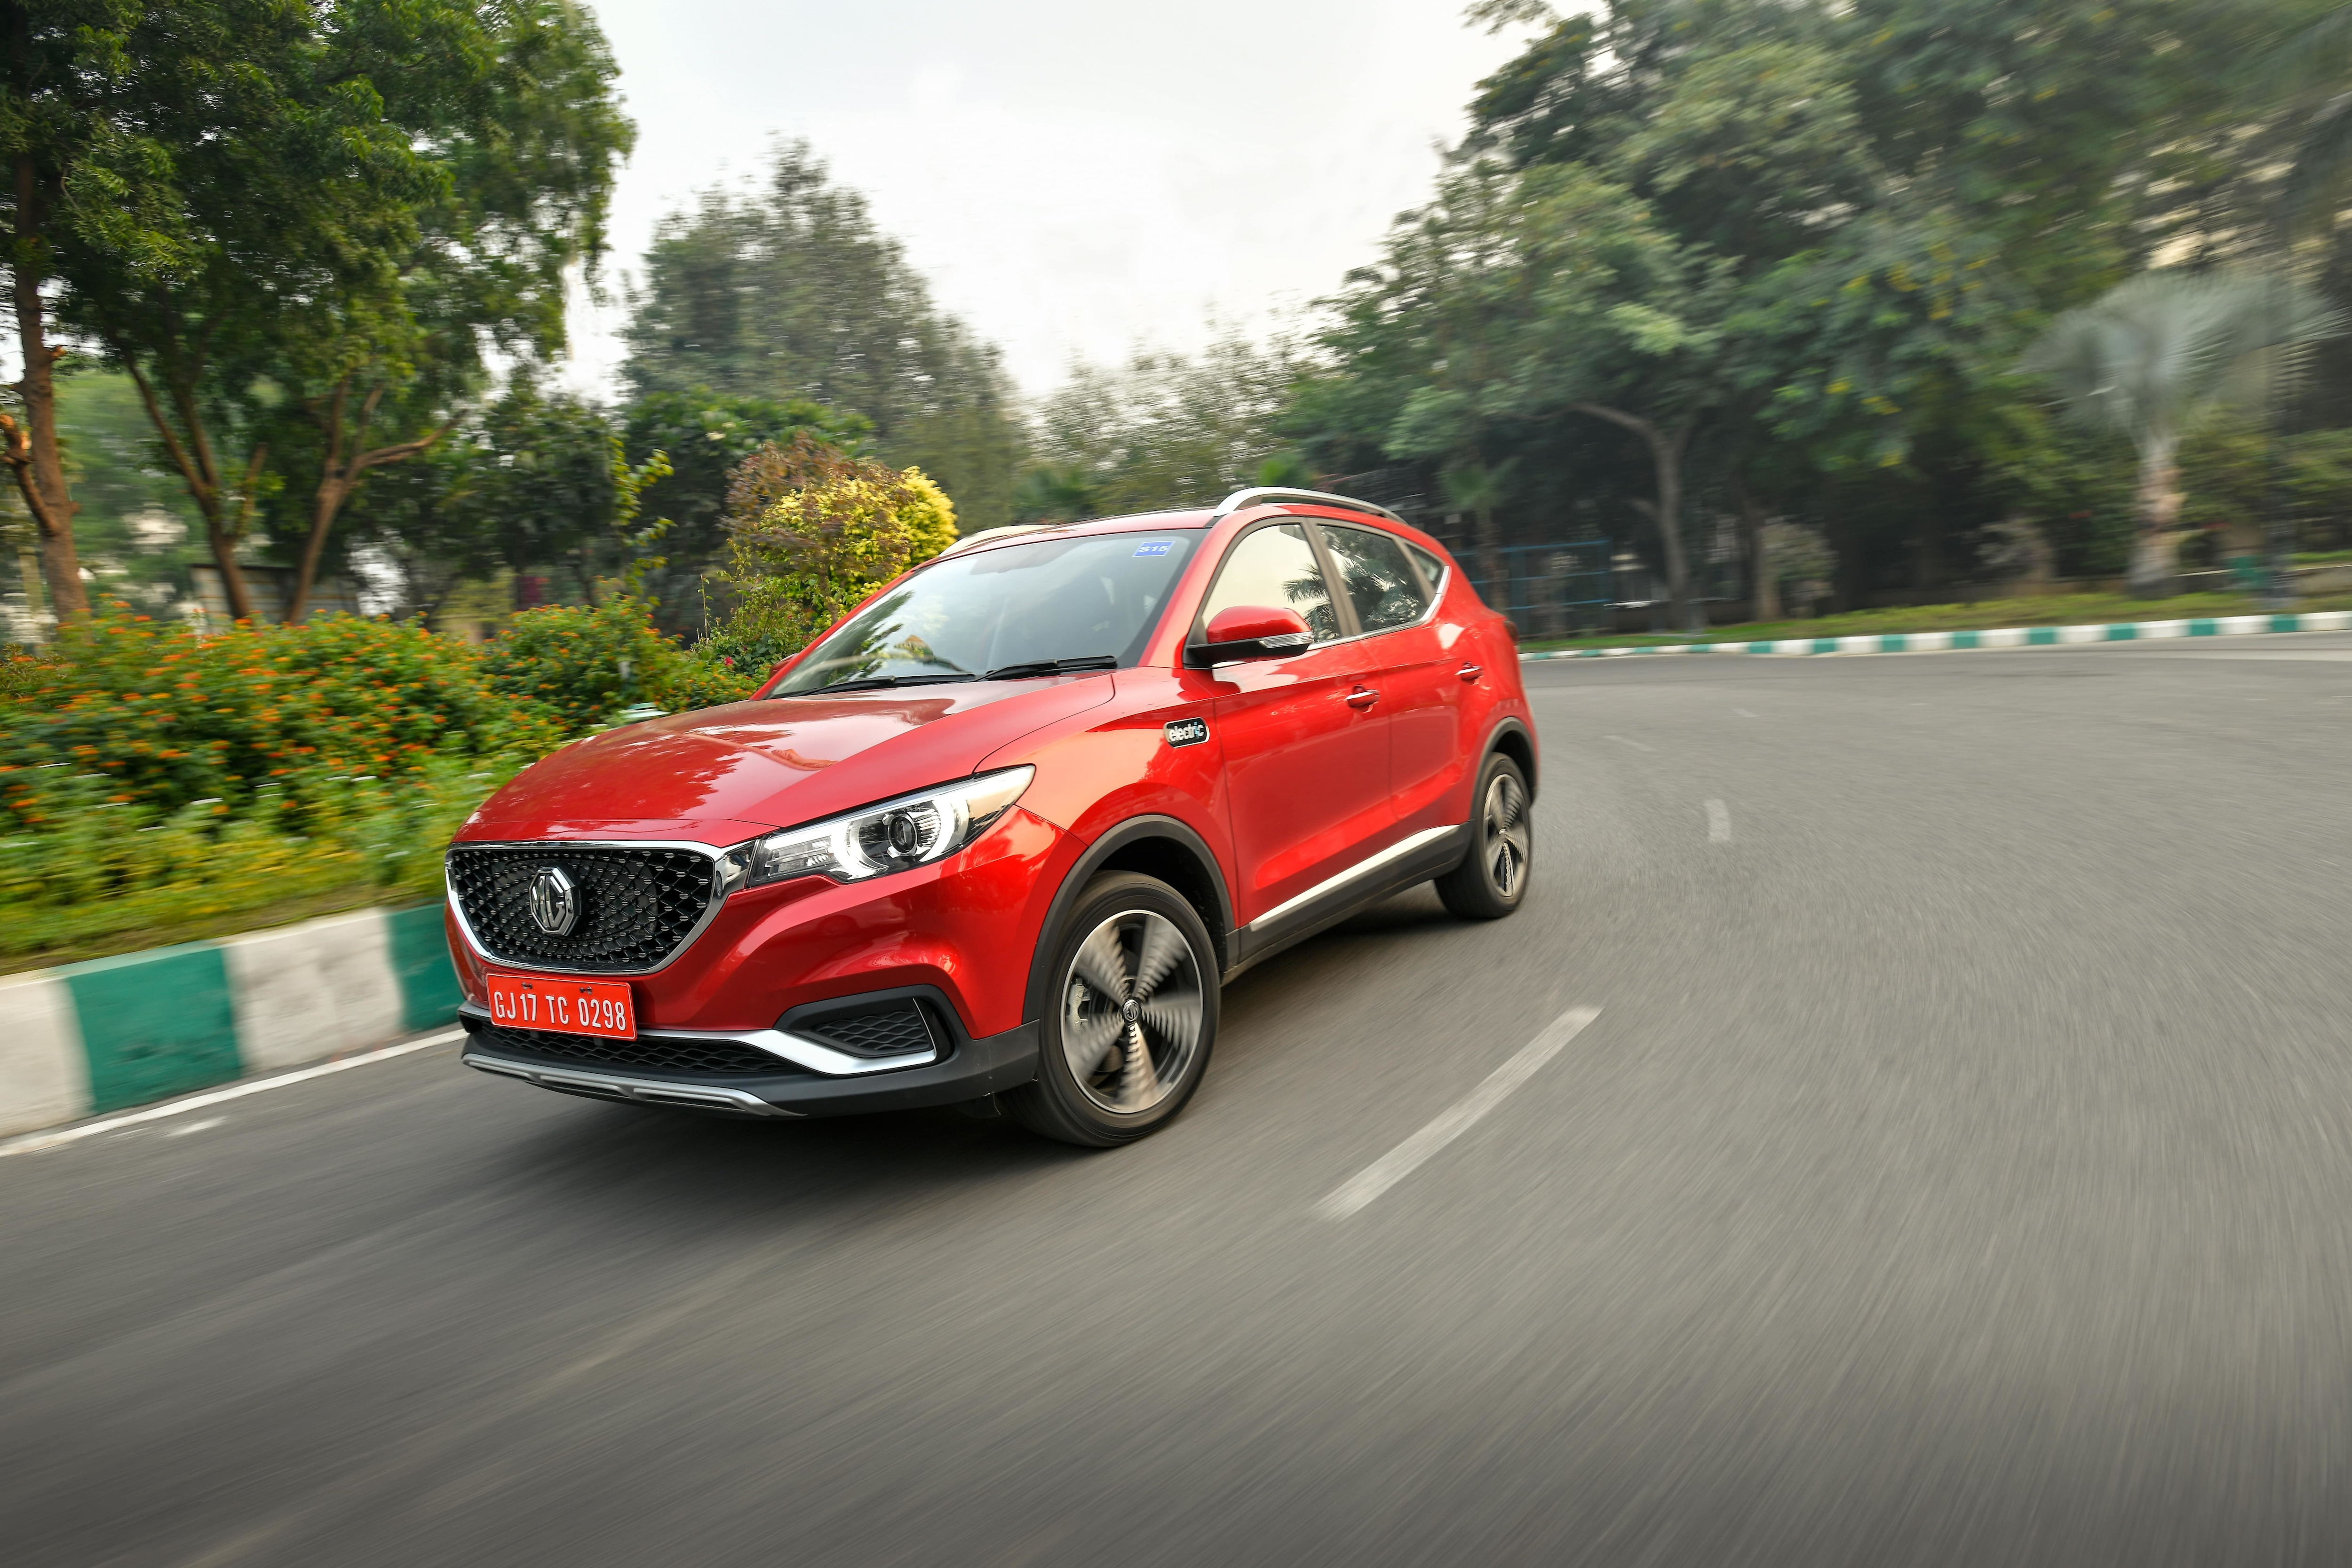 MG Motor has confidently walked into the electric mobility space in India after the success of its first and only product here - the Hector. With the ZS EV, the company is dreaming big and working hard to turn it into a reality.